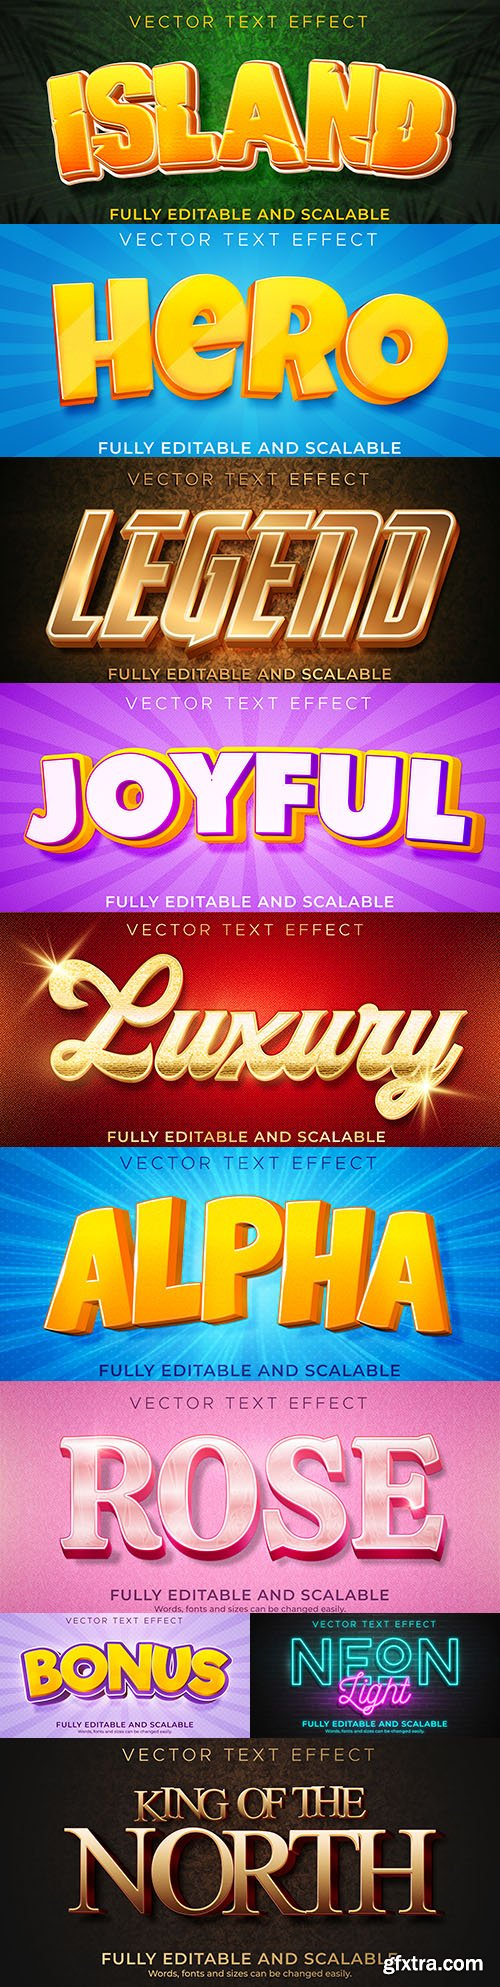 Editable font and 3d effect text design collection illustration 32